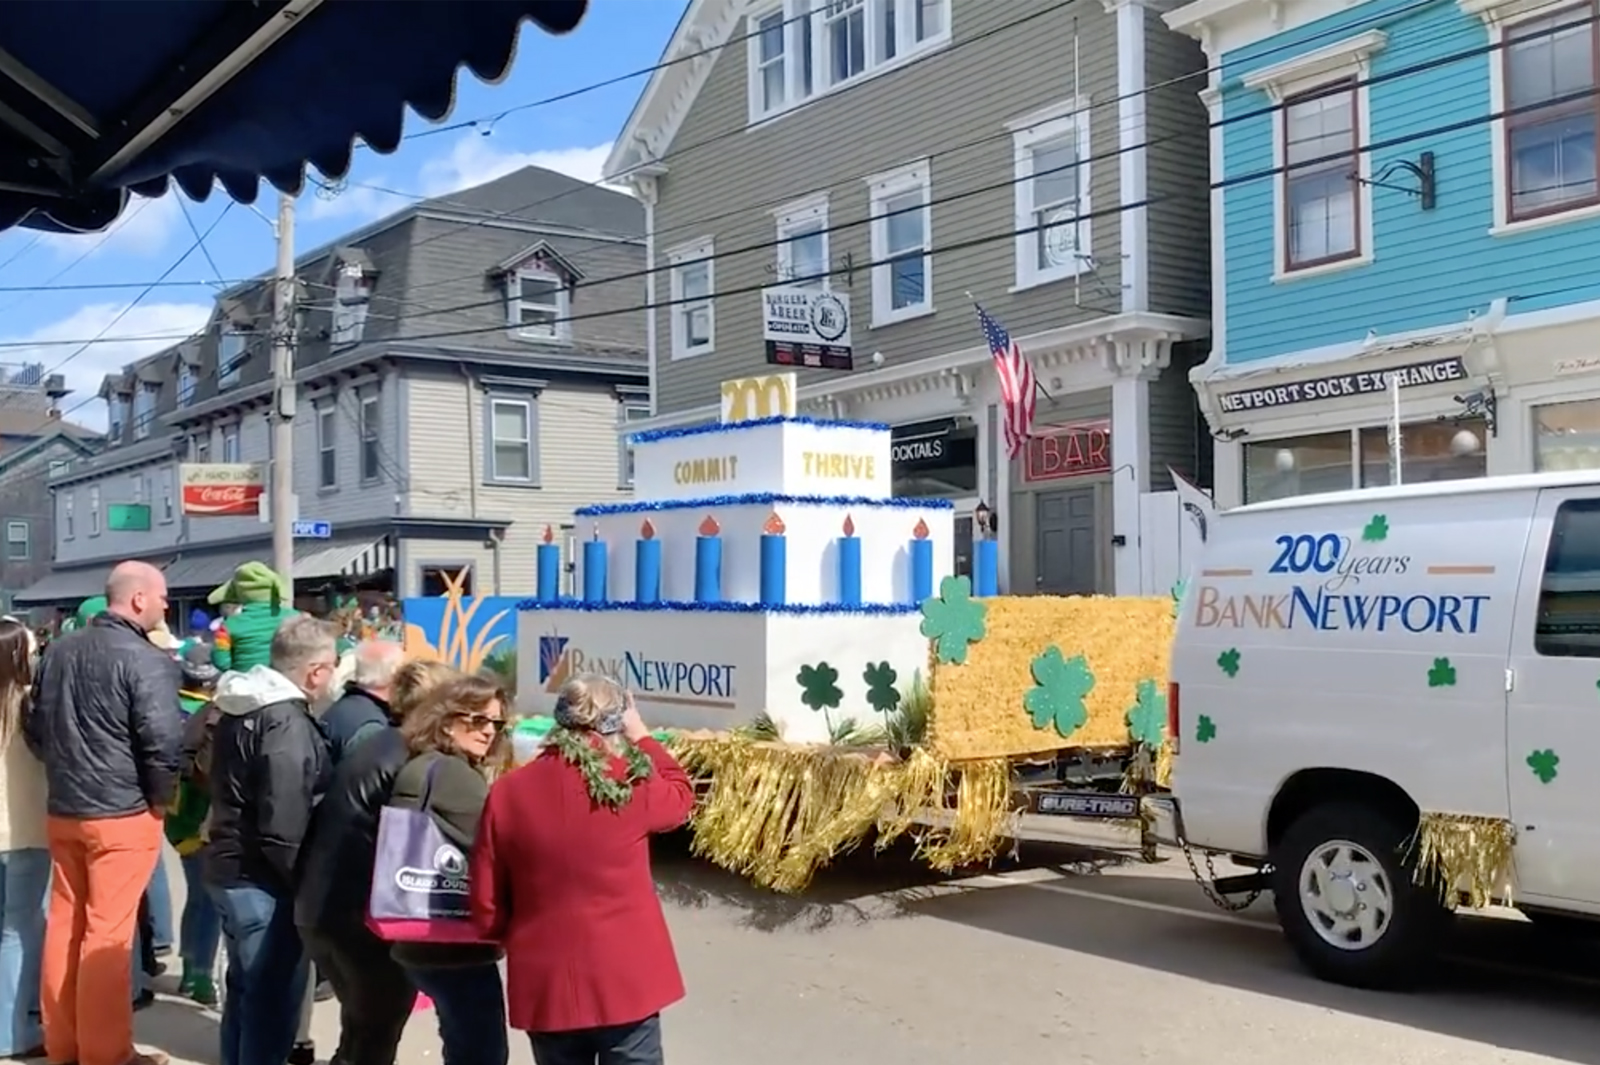 Newport Bank Float